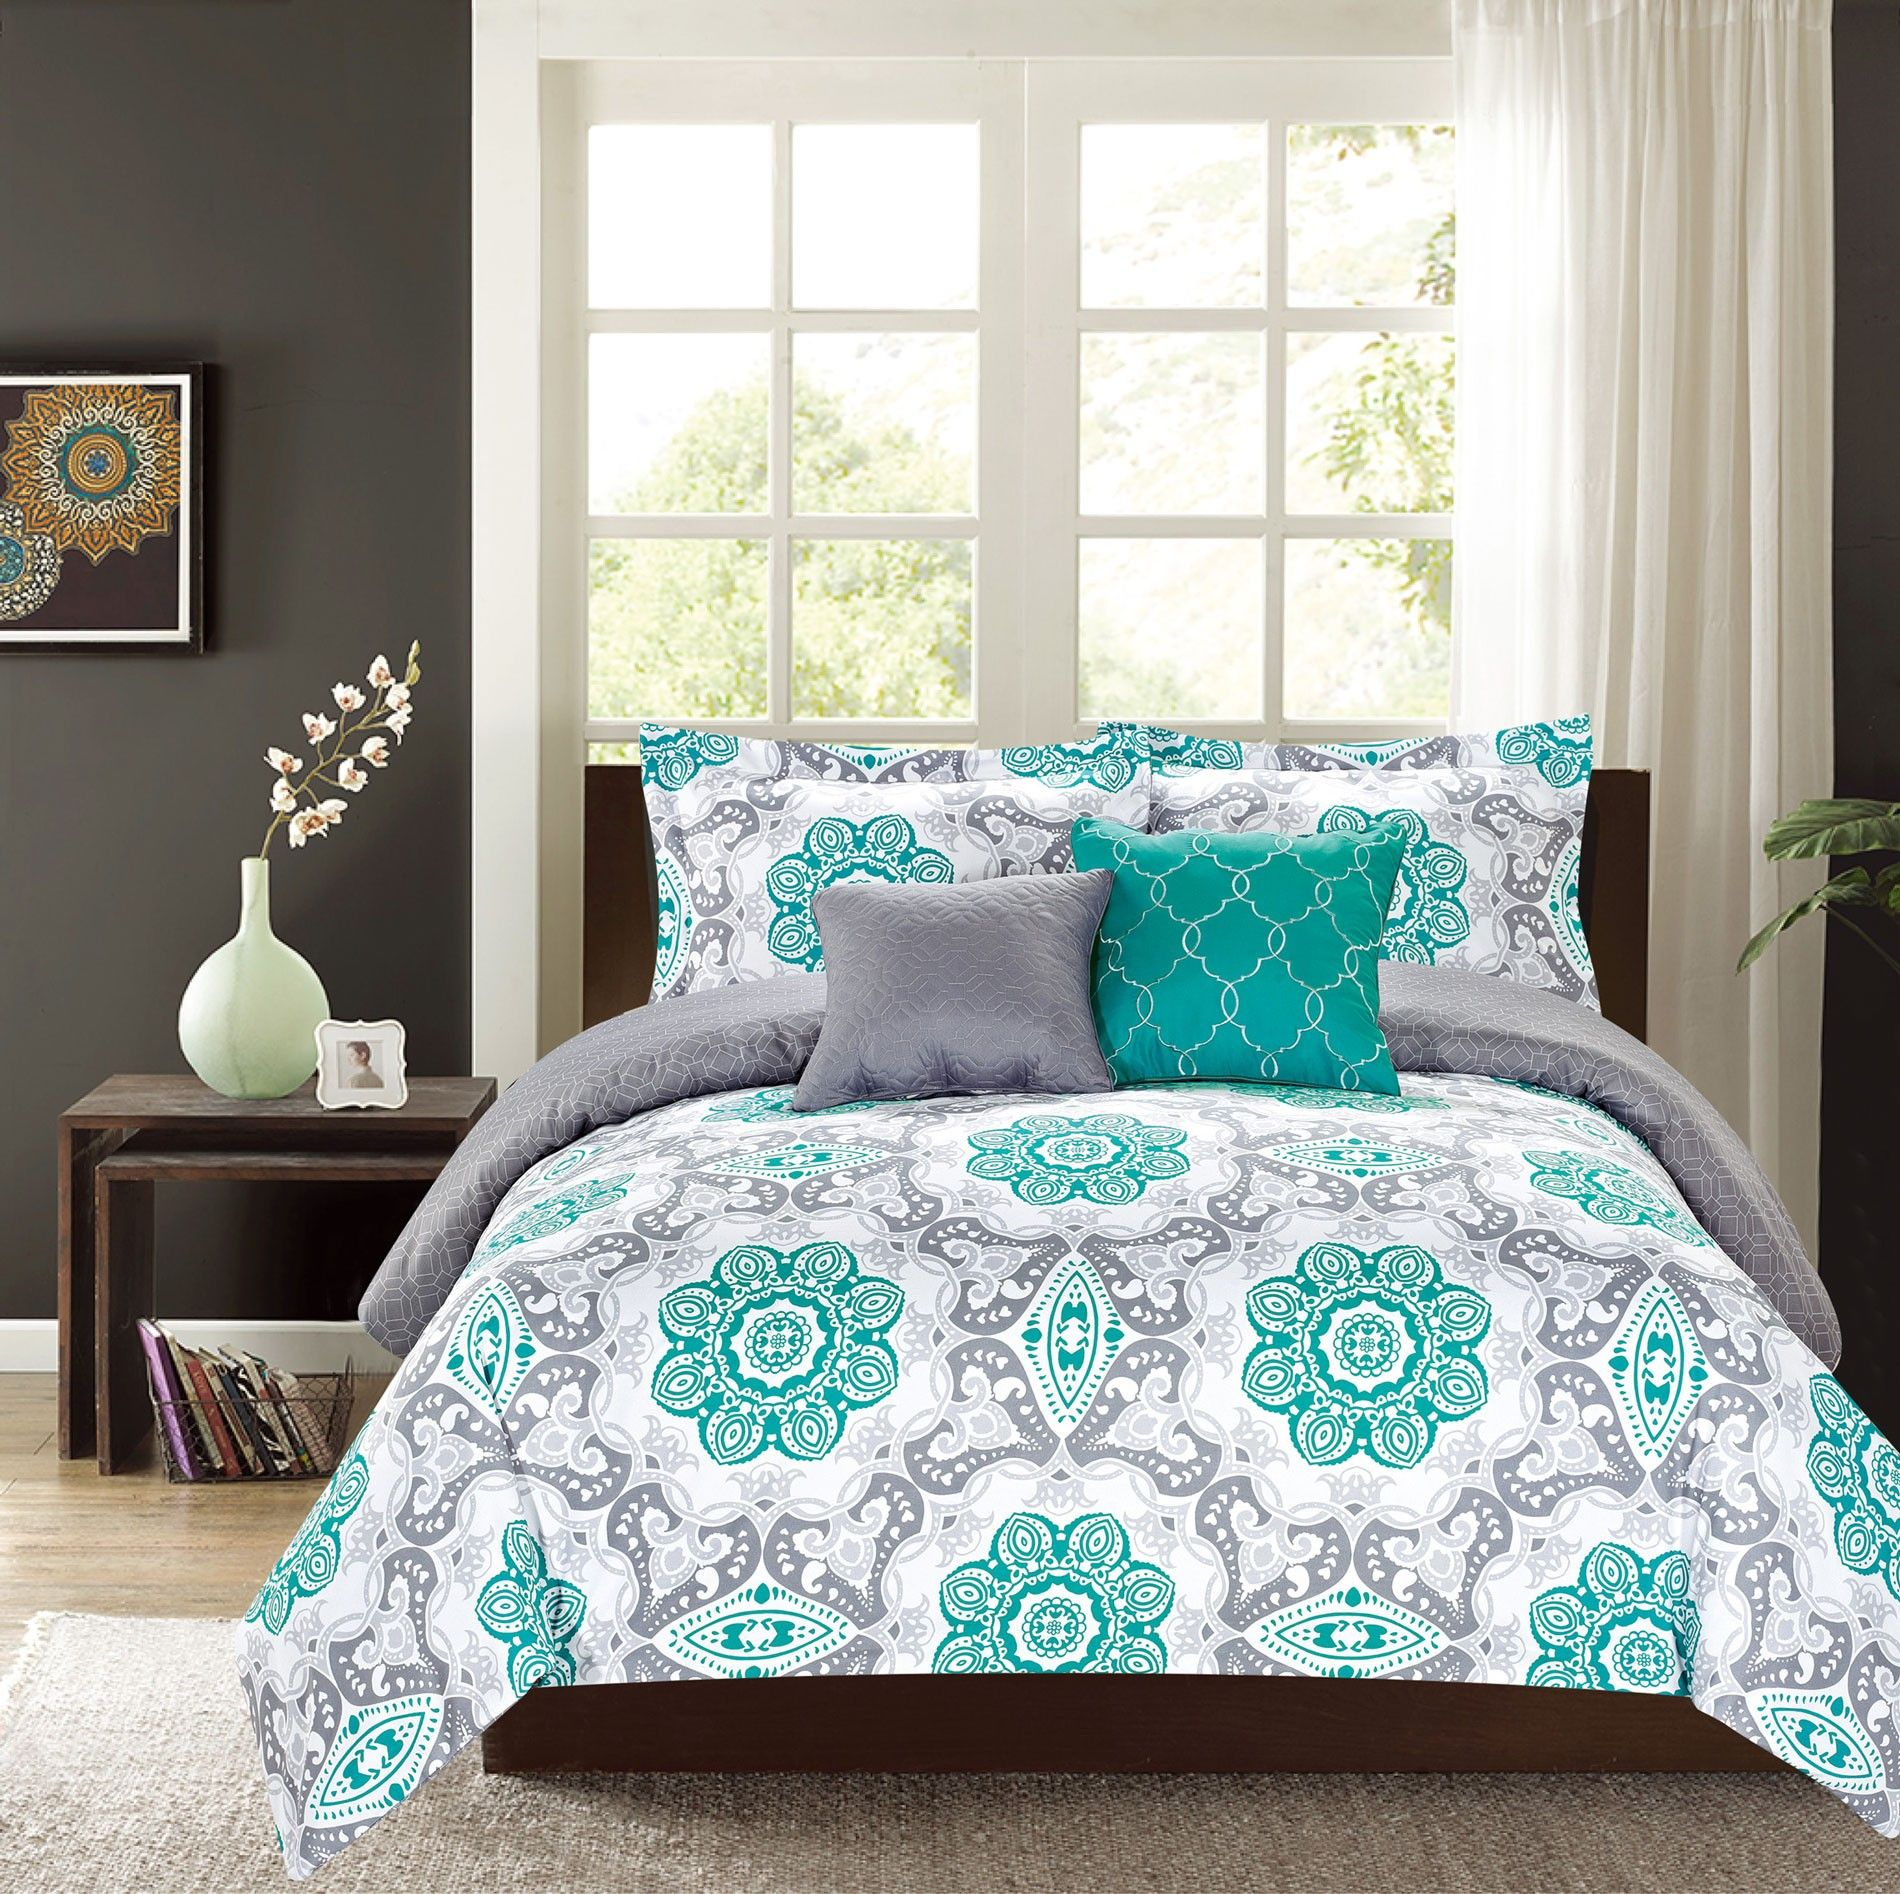 Crest home sunrise king comforter 5 pc bedding set teal for Teal bedroom